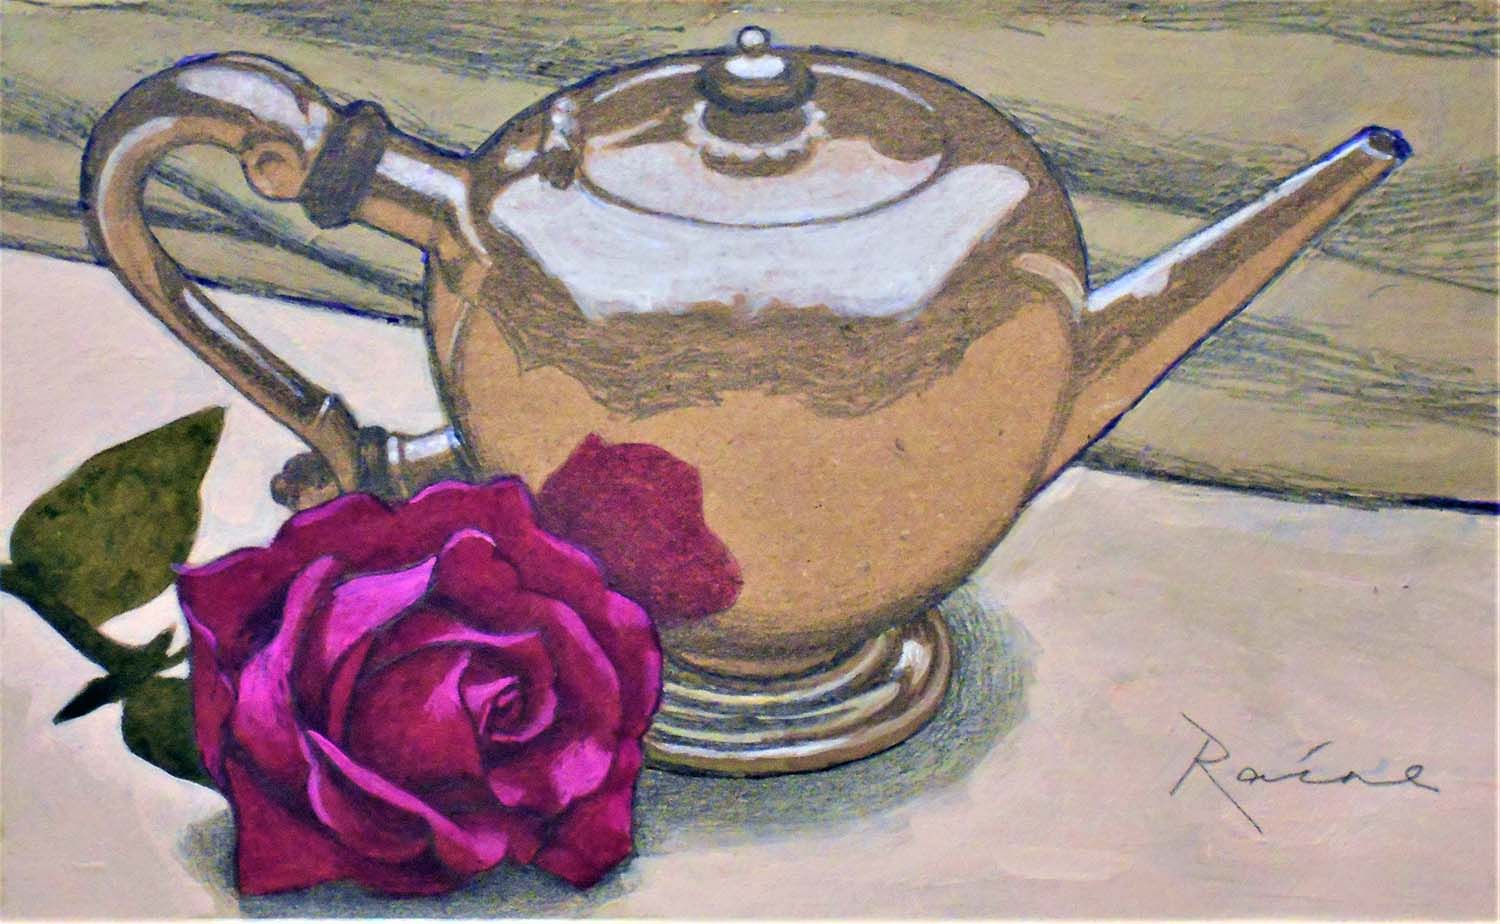 'Meldrum Teapot by Duncan Urquhart c 1700' John Paul Raine Pencil and Acrylic on Paper  25x15cm  £335